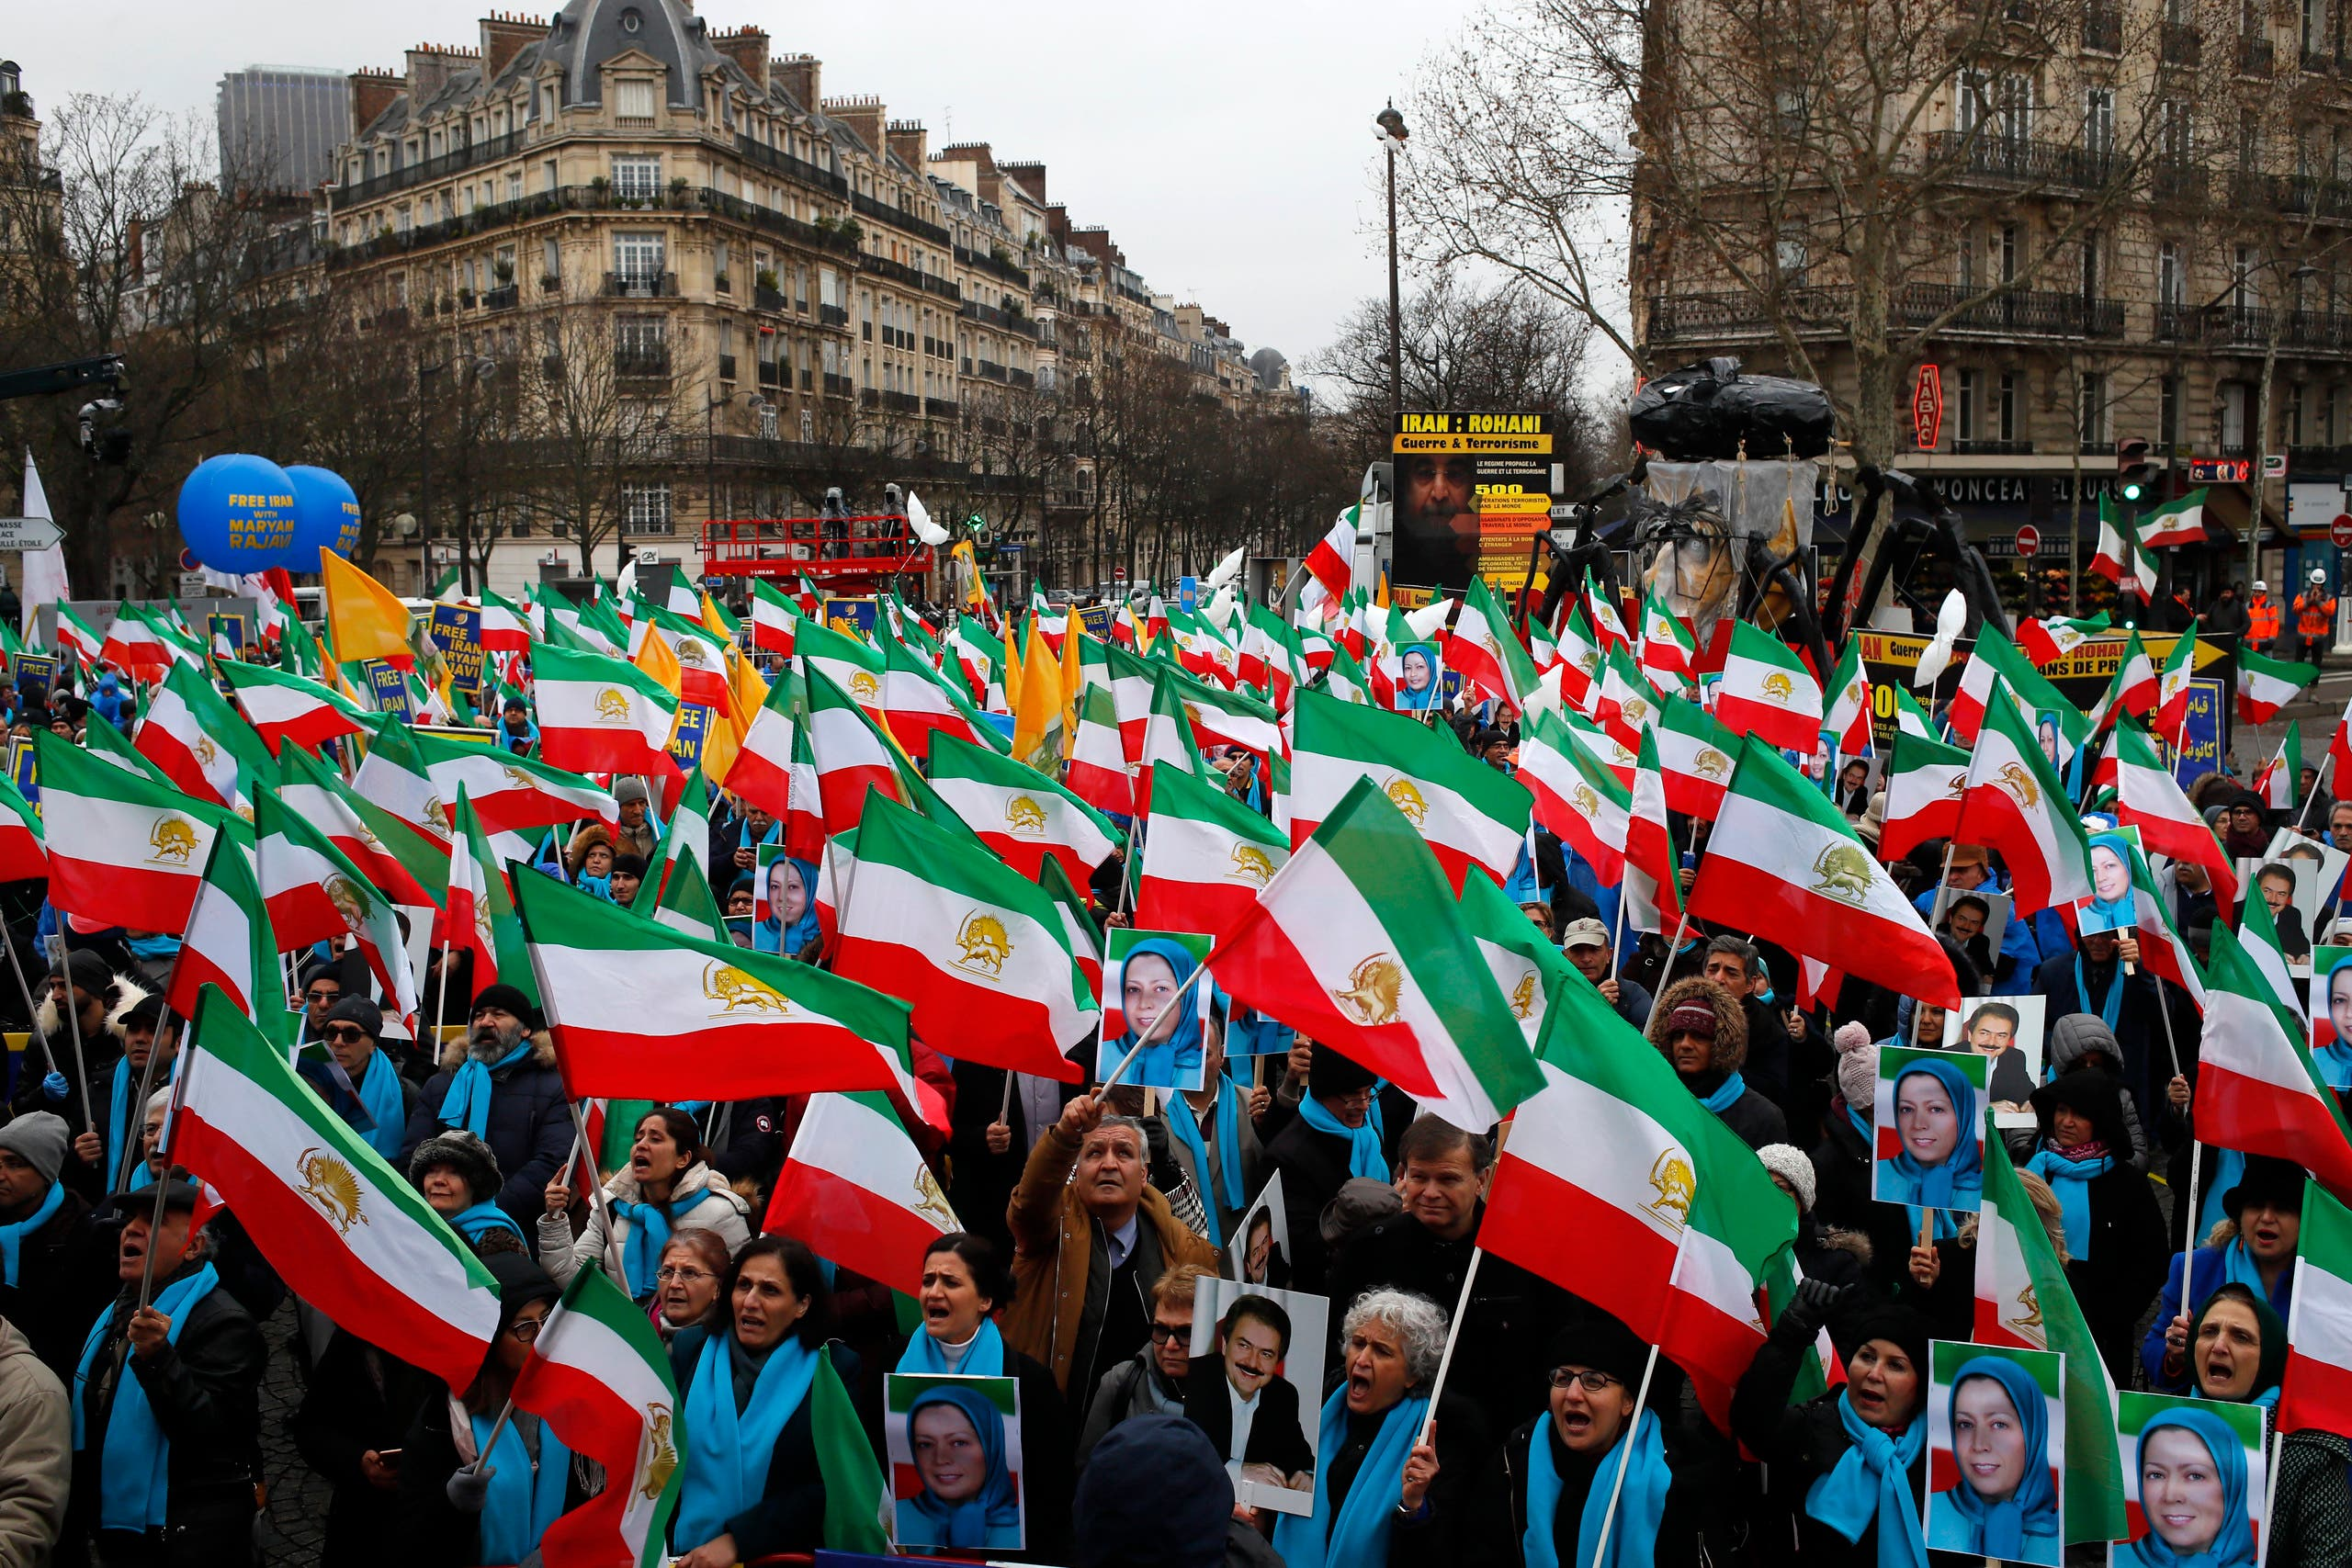 Supporters of Maryam Rajavi, the leader of the National Council of Resistance of Iran, demonstrate in Paris, Friday Feb.8, 2019 as Iran marks the 40th anniversary of its Islamic Revolution (AP)